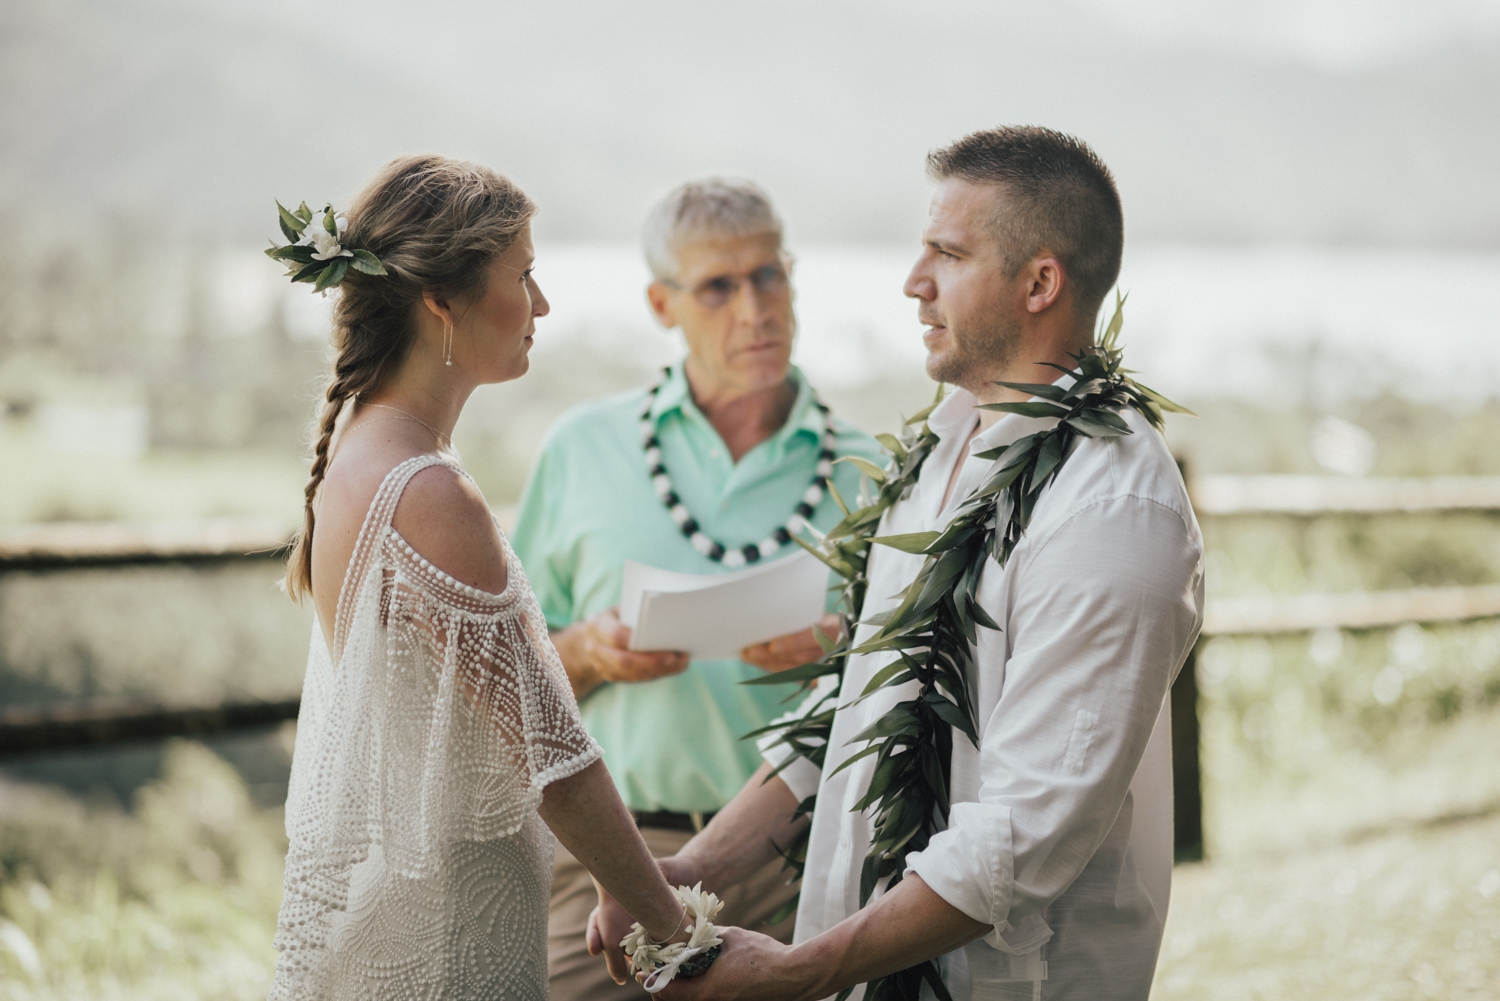 Kauai-elopement-photographer-35.jpg